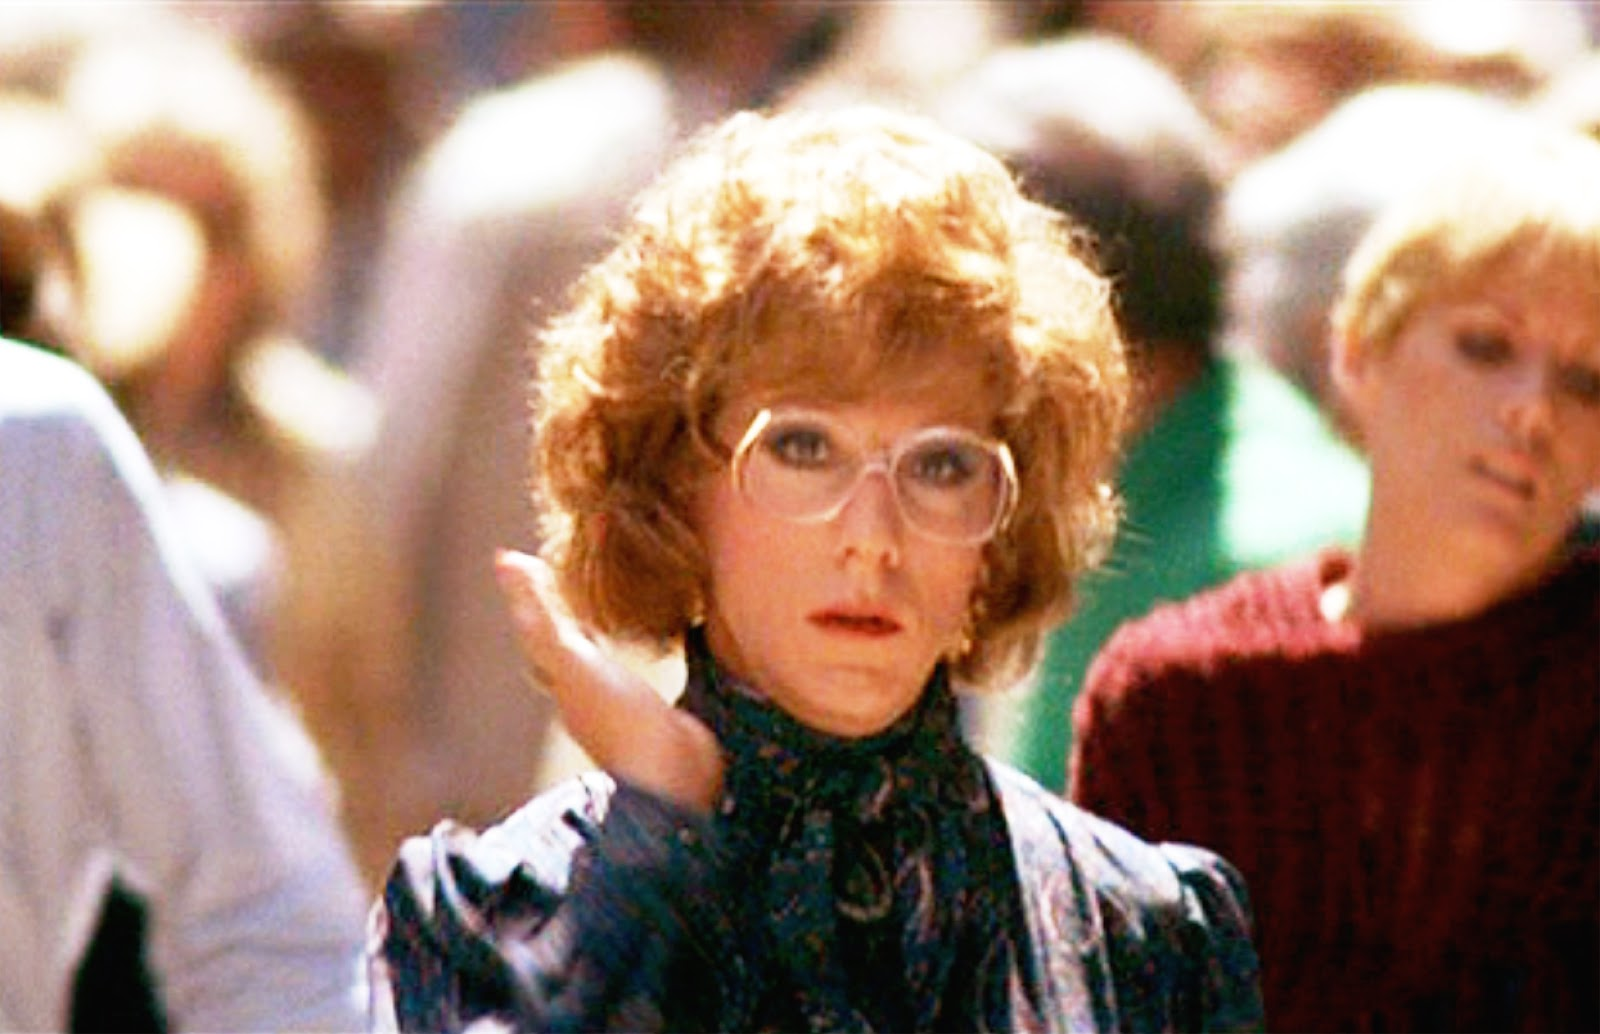 1 Bedroom Apartments In Phoenix Az Dustin Hoffman As Tootsie Tootsie Movie Dustin Hoffman Www